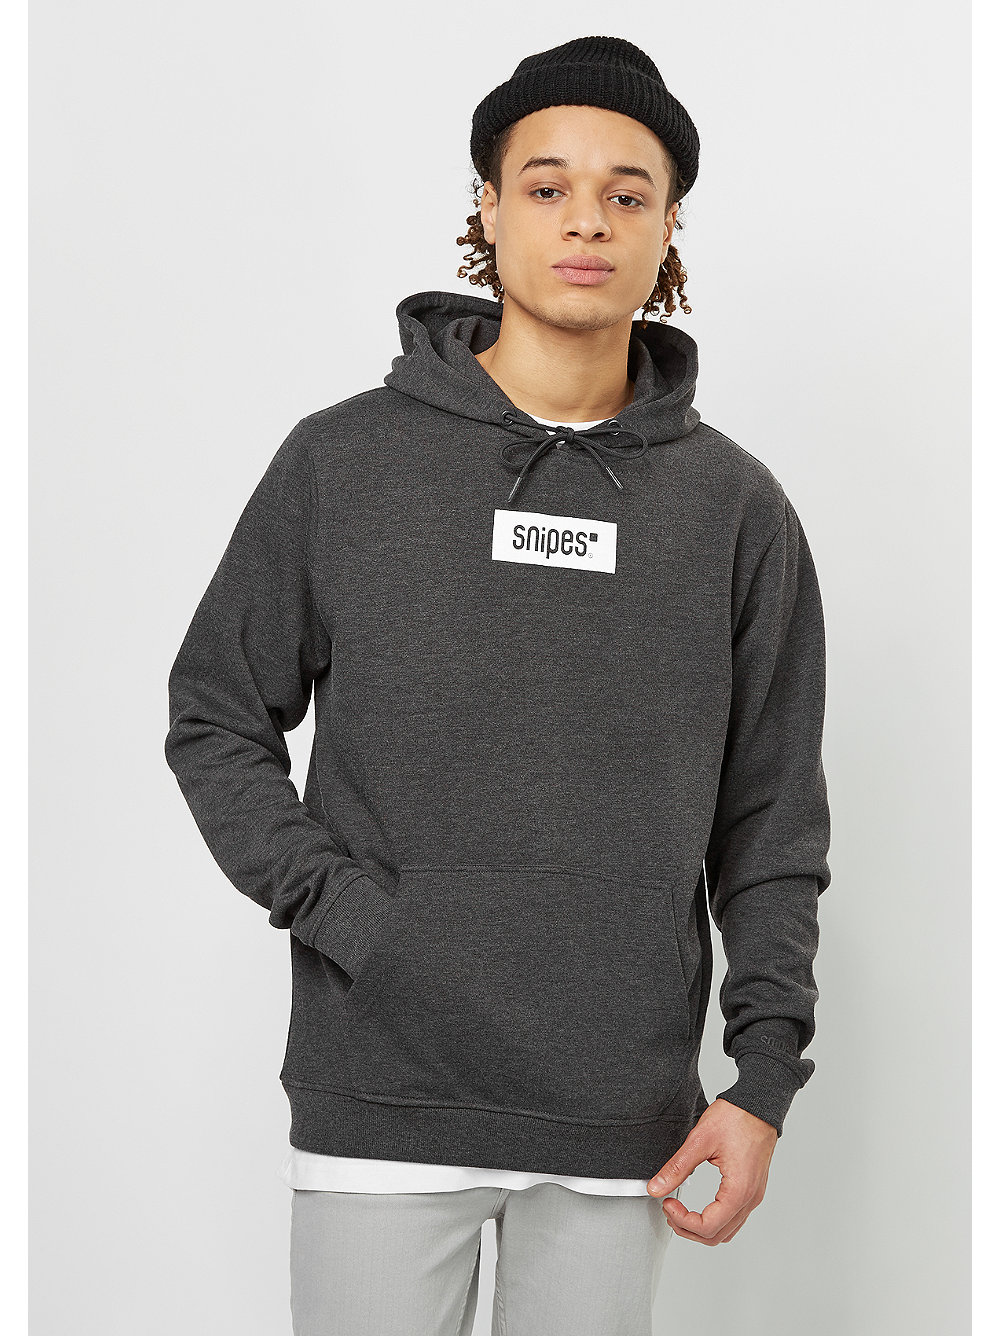 snipes hooded sweatshirt small box logo charcoal white snipes onlineshop. Black Bedroom Furniture Sets. Home Design Ideas